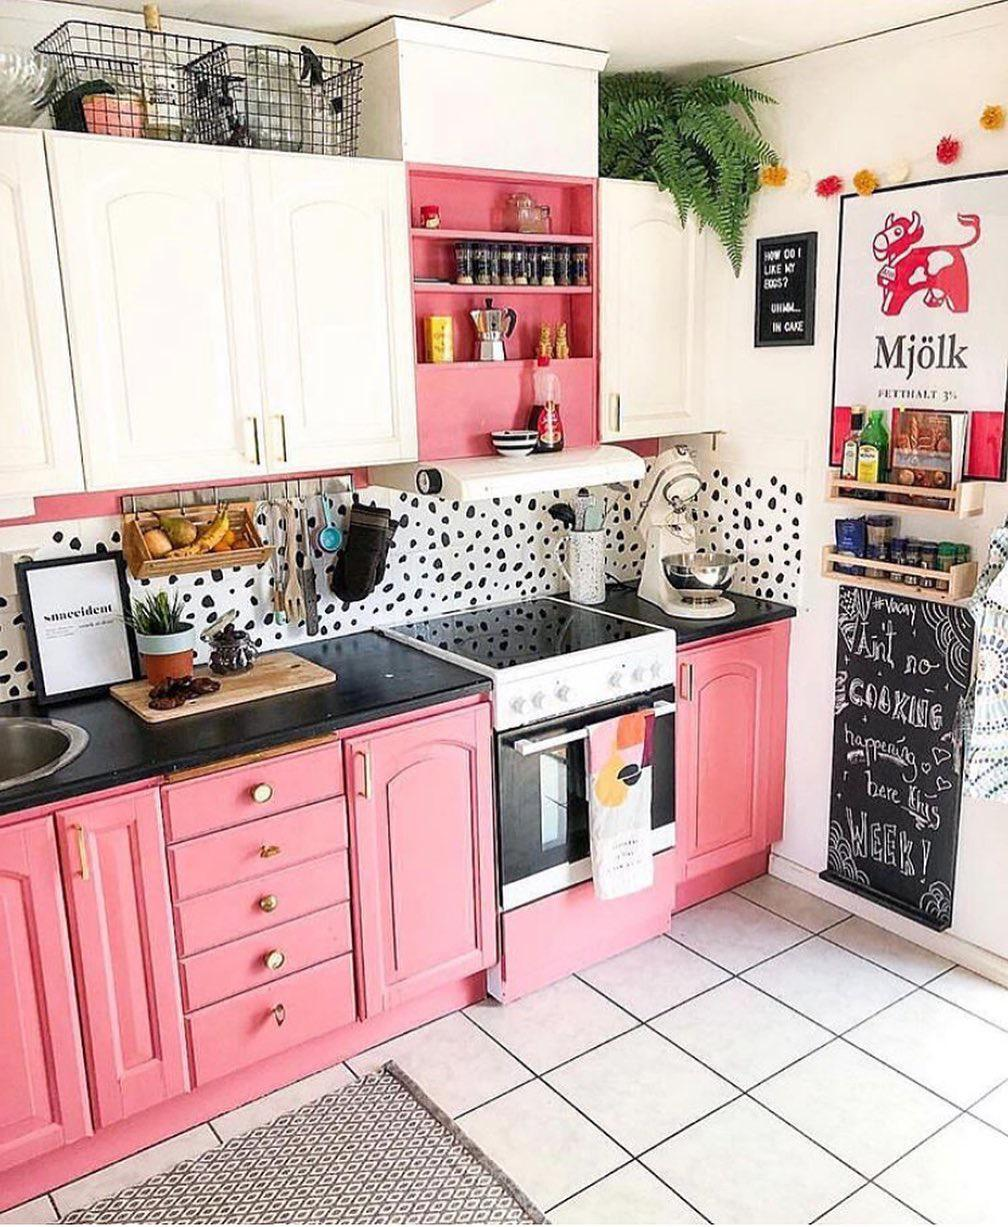 Inspiring Kitchen Design Ideas For Your Home - Page 29 of 35 - Liatsy Fashion